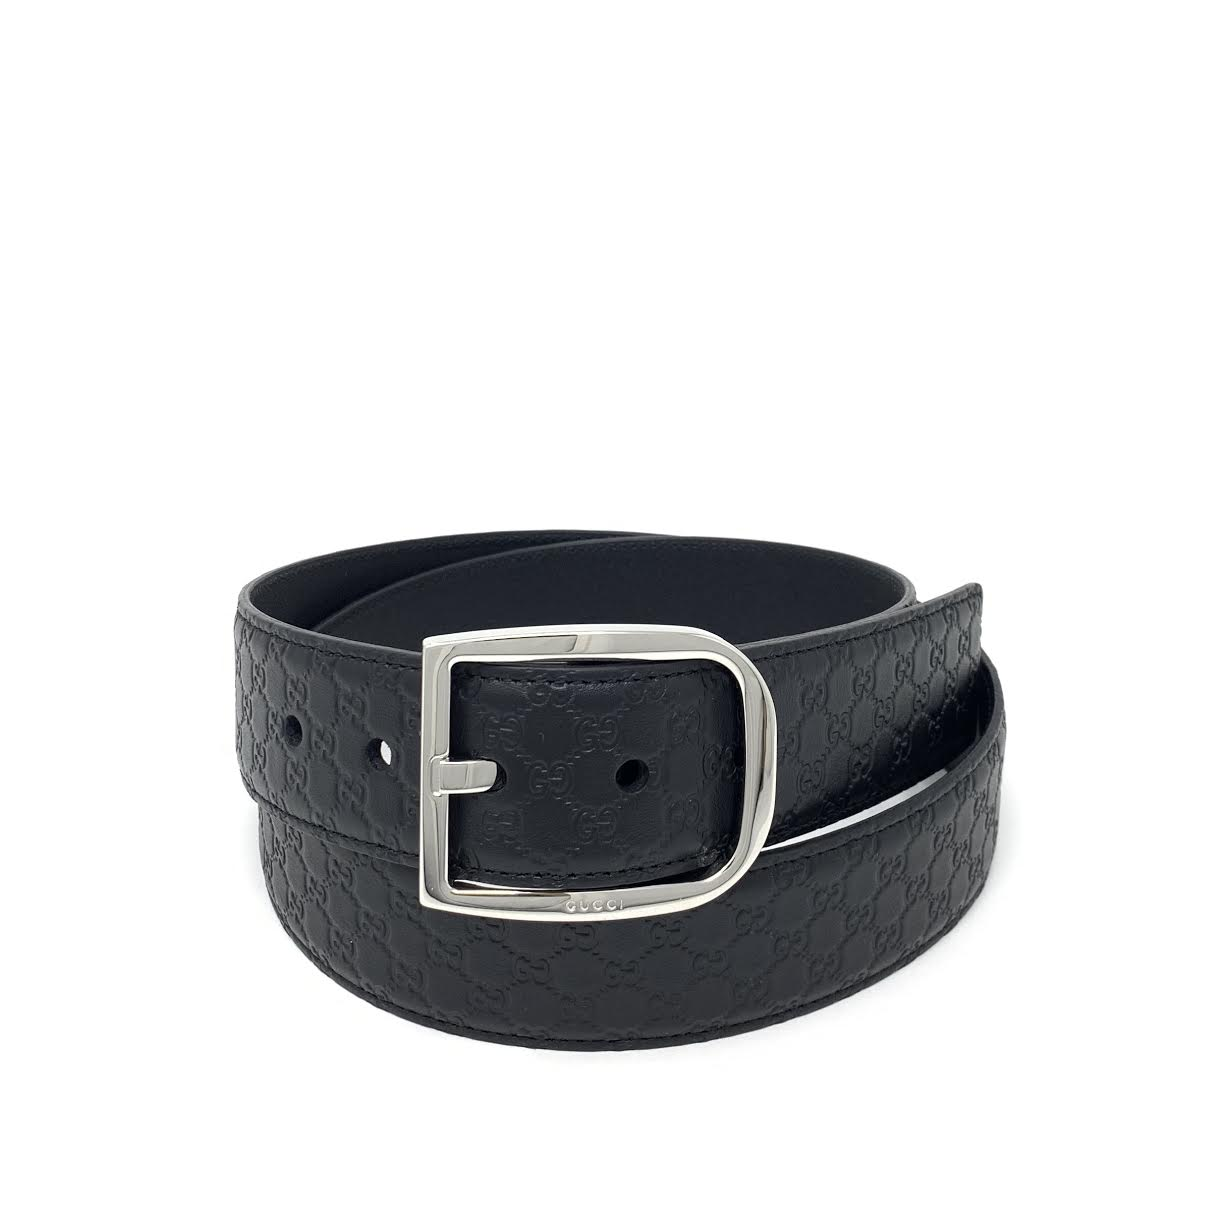 553edad995f Share Share on Facebook Tweet Tweet on Twitter Pin it Pin on Pinterest.  Gucci Black Guccissima Leather Belt ...